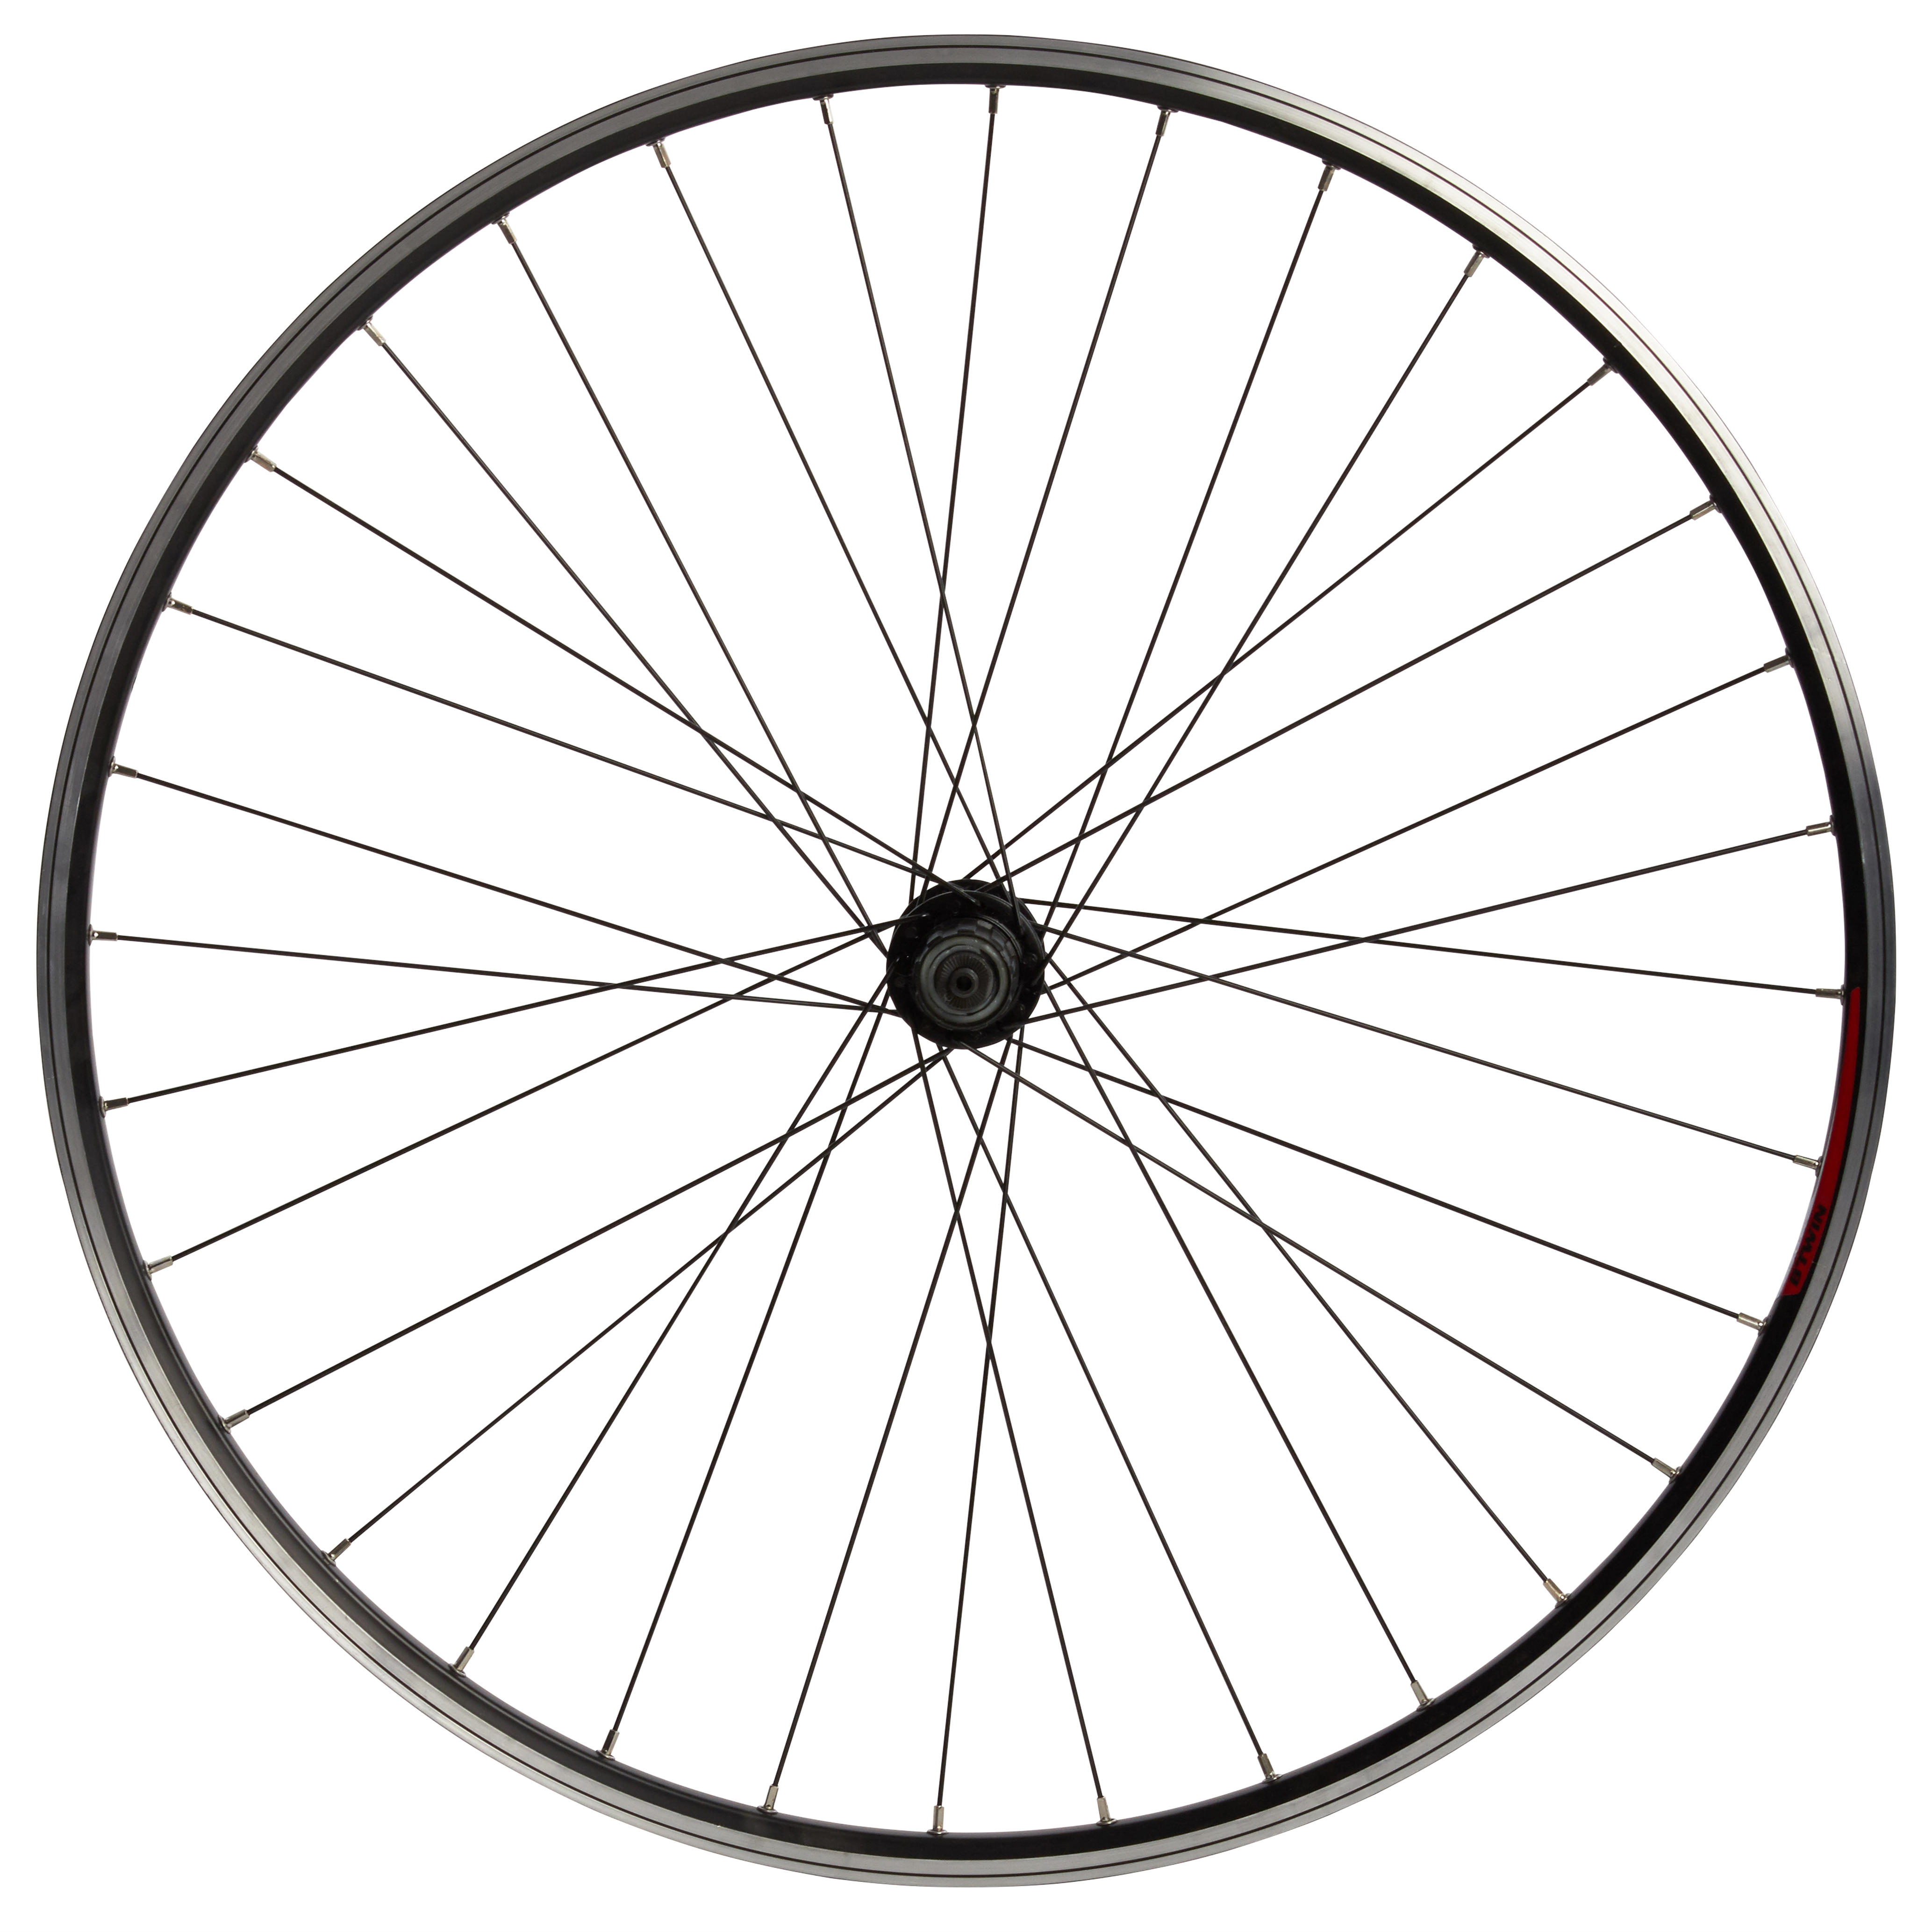 Buy Cycling Spareparts Wheels Online In India